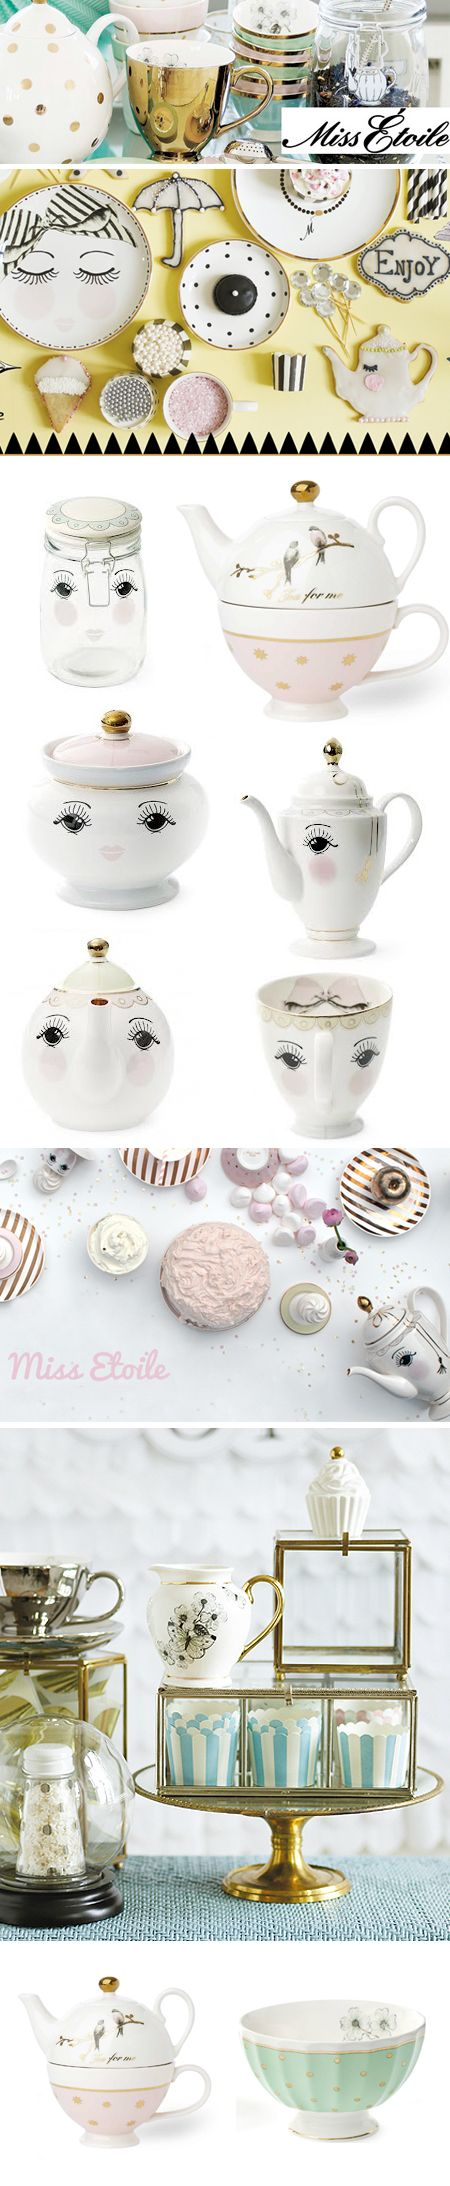 My favourite collection... Need to pack them n bring them to my new home.. Cindy